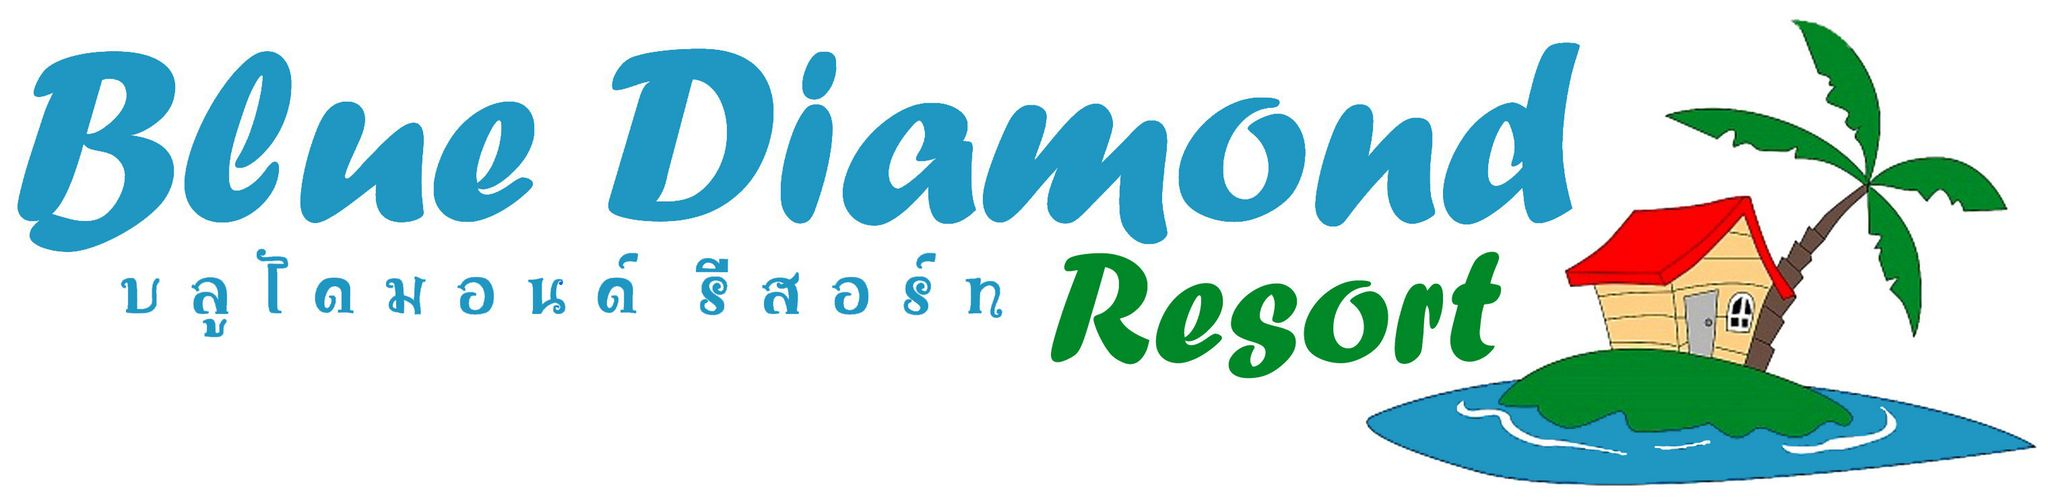 Blue Diamond Resort